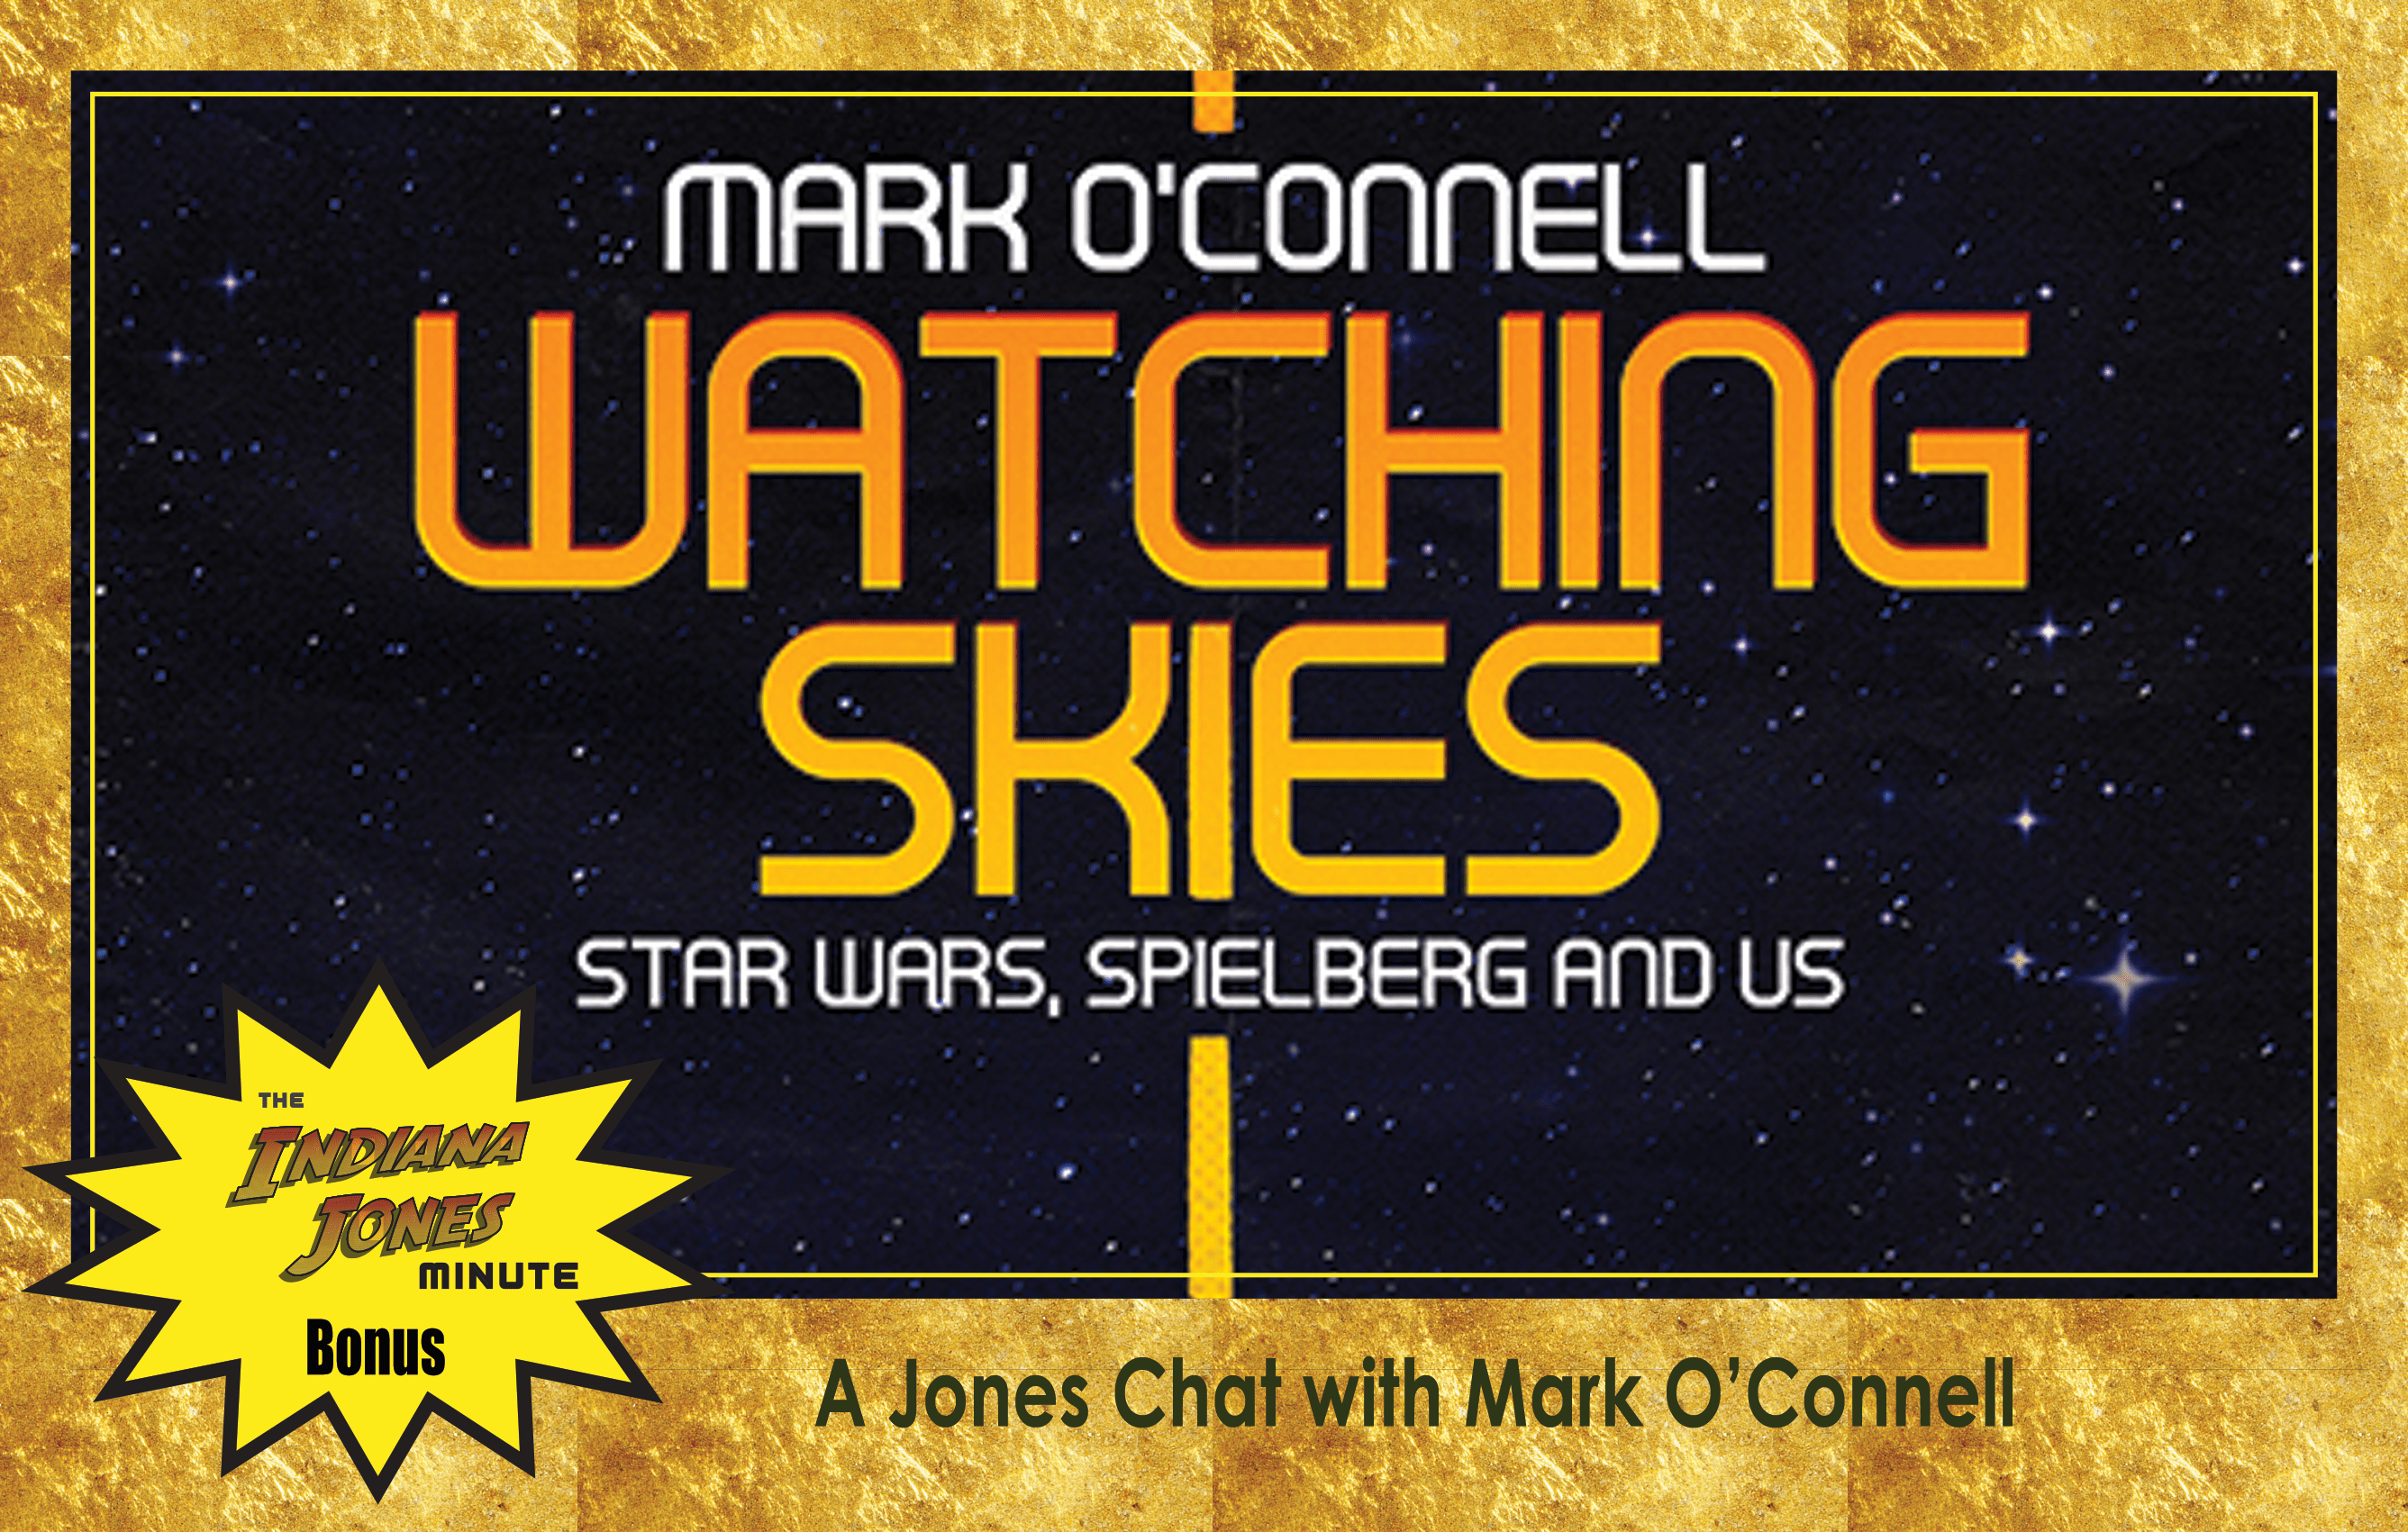 Bonus: A Jones Chat with Mark O'Connell